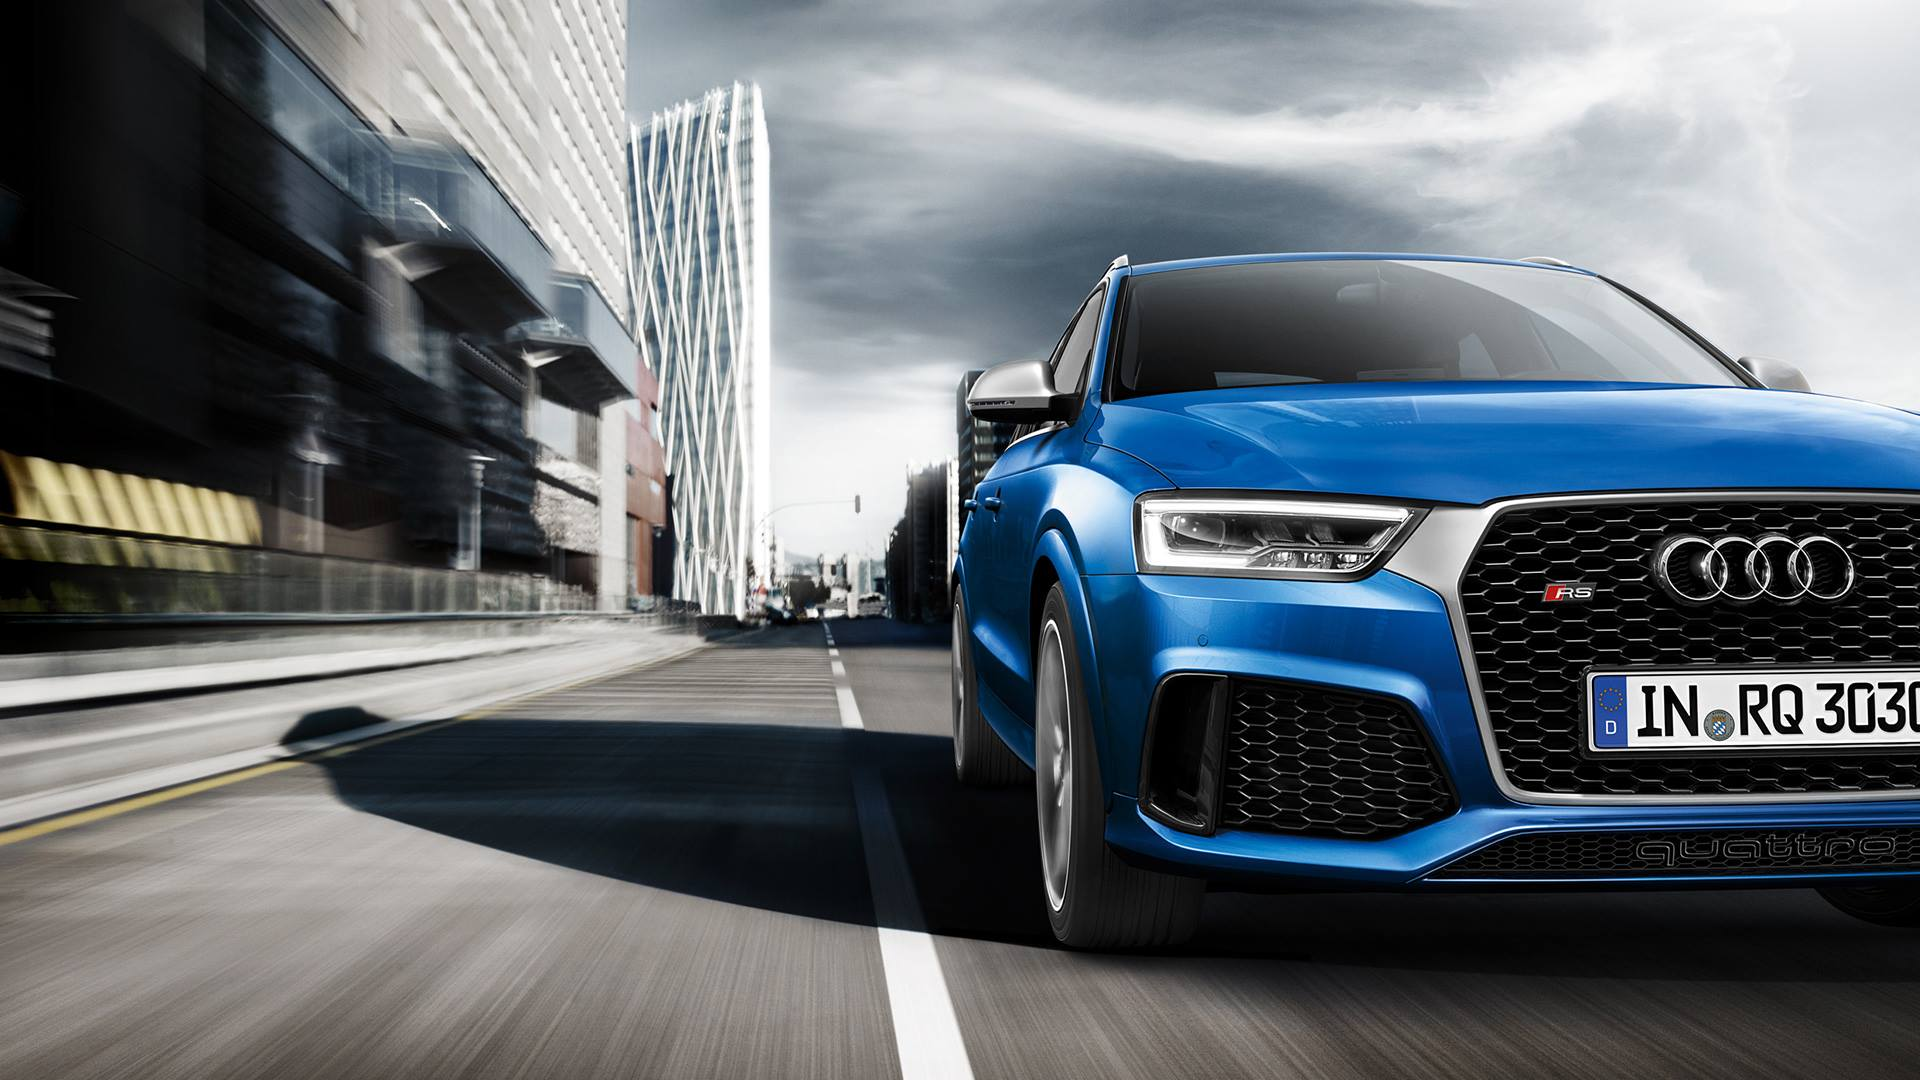 Hp Wallpaper Hd 1920x1080 Audi Rs Q3 Facelift Specs 2015 Autoevolution